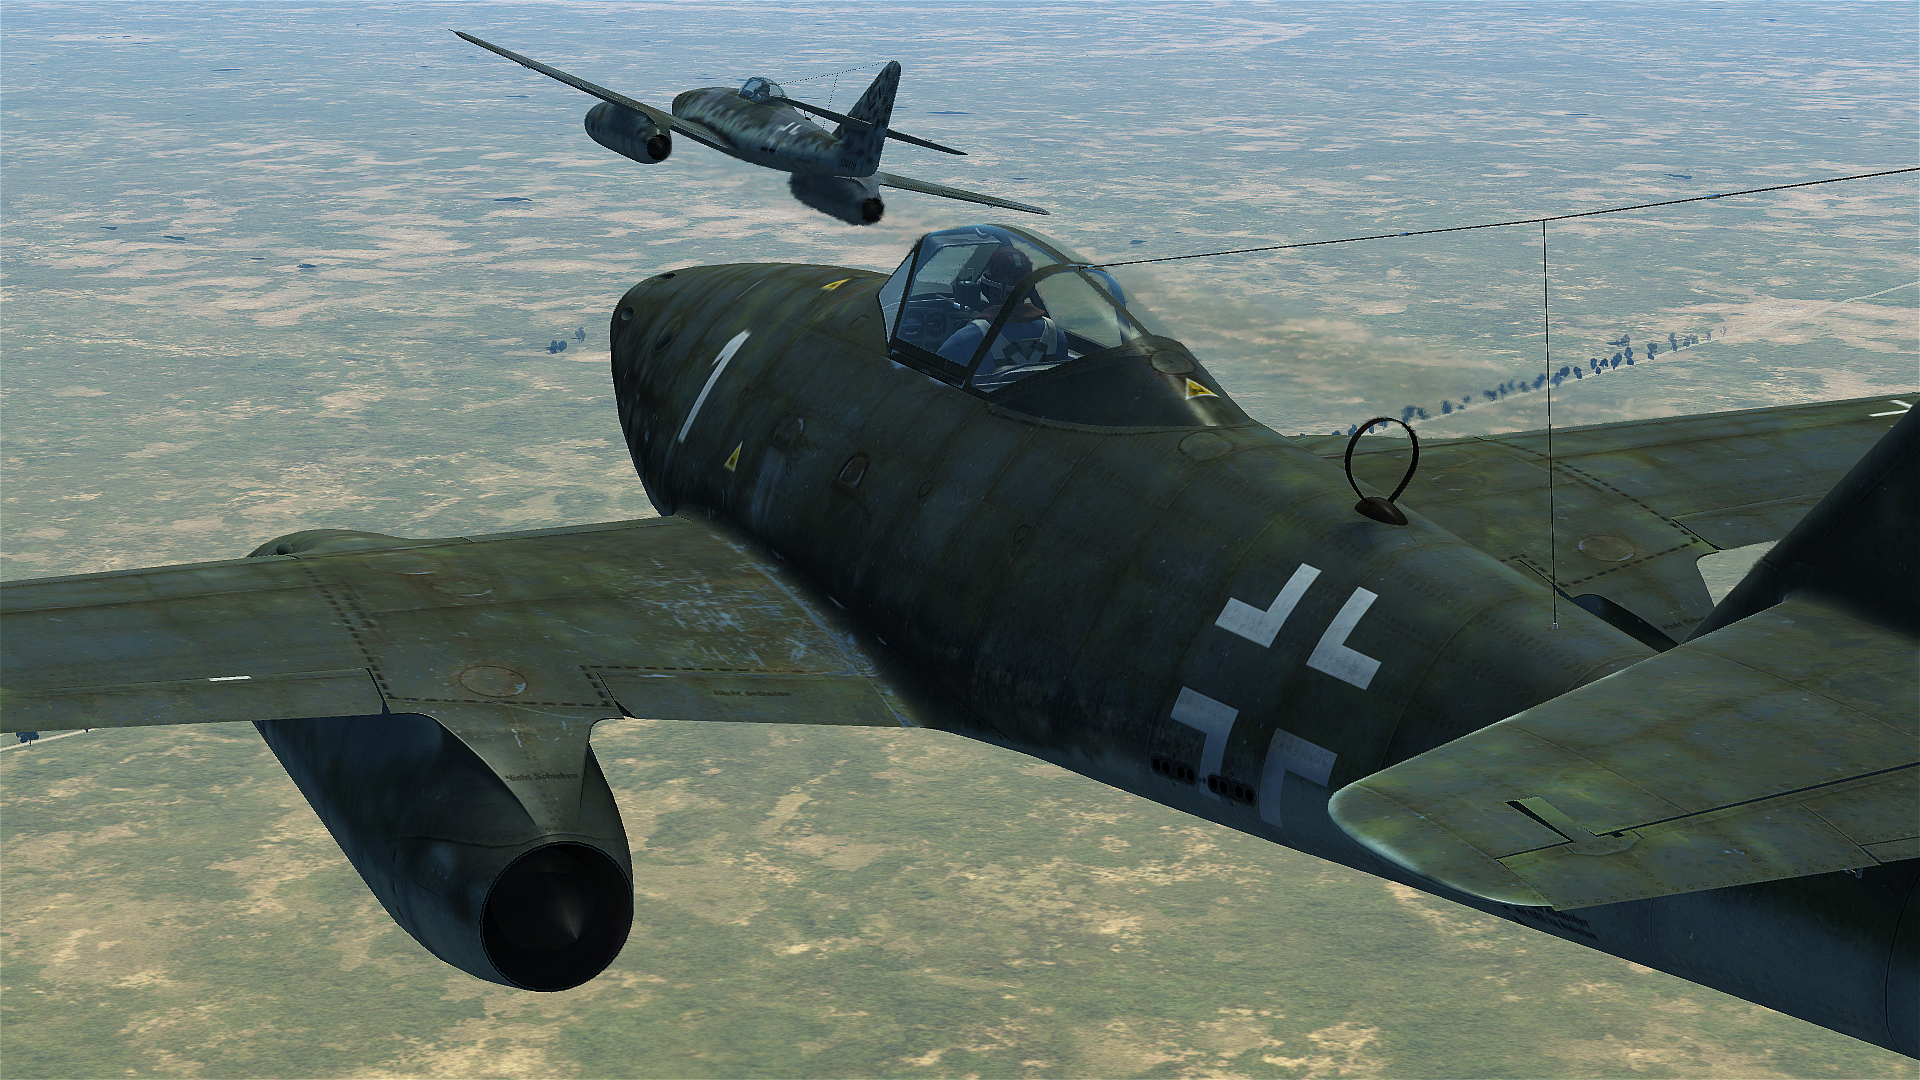 il-22019-06-1622-58-4hnkzt.png